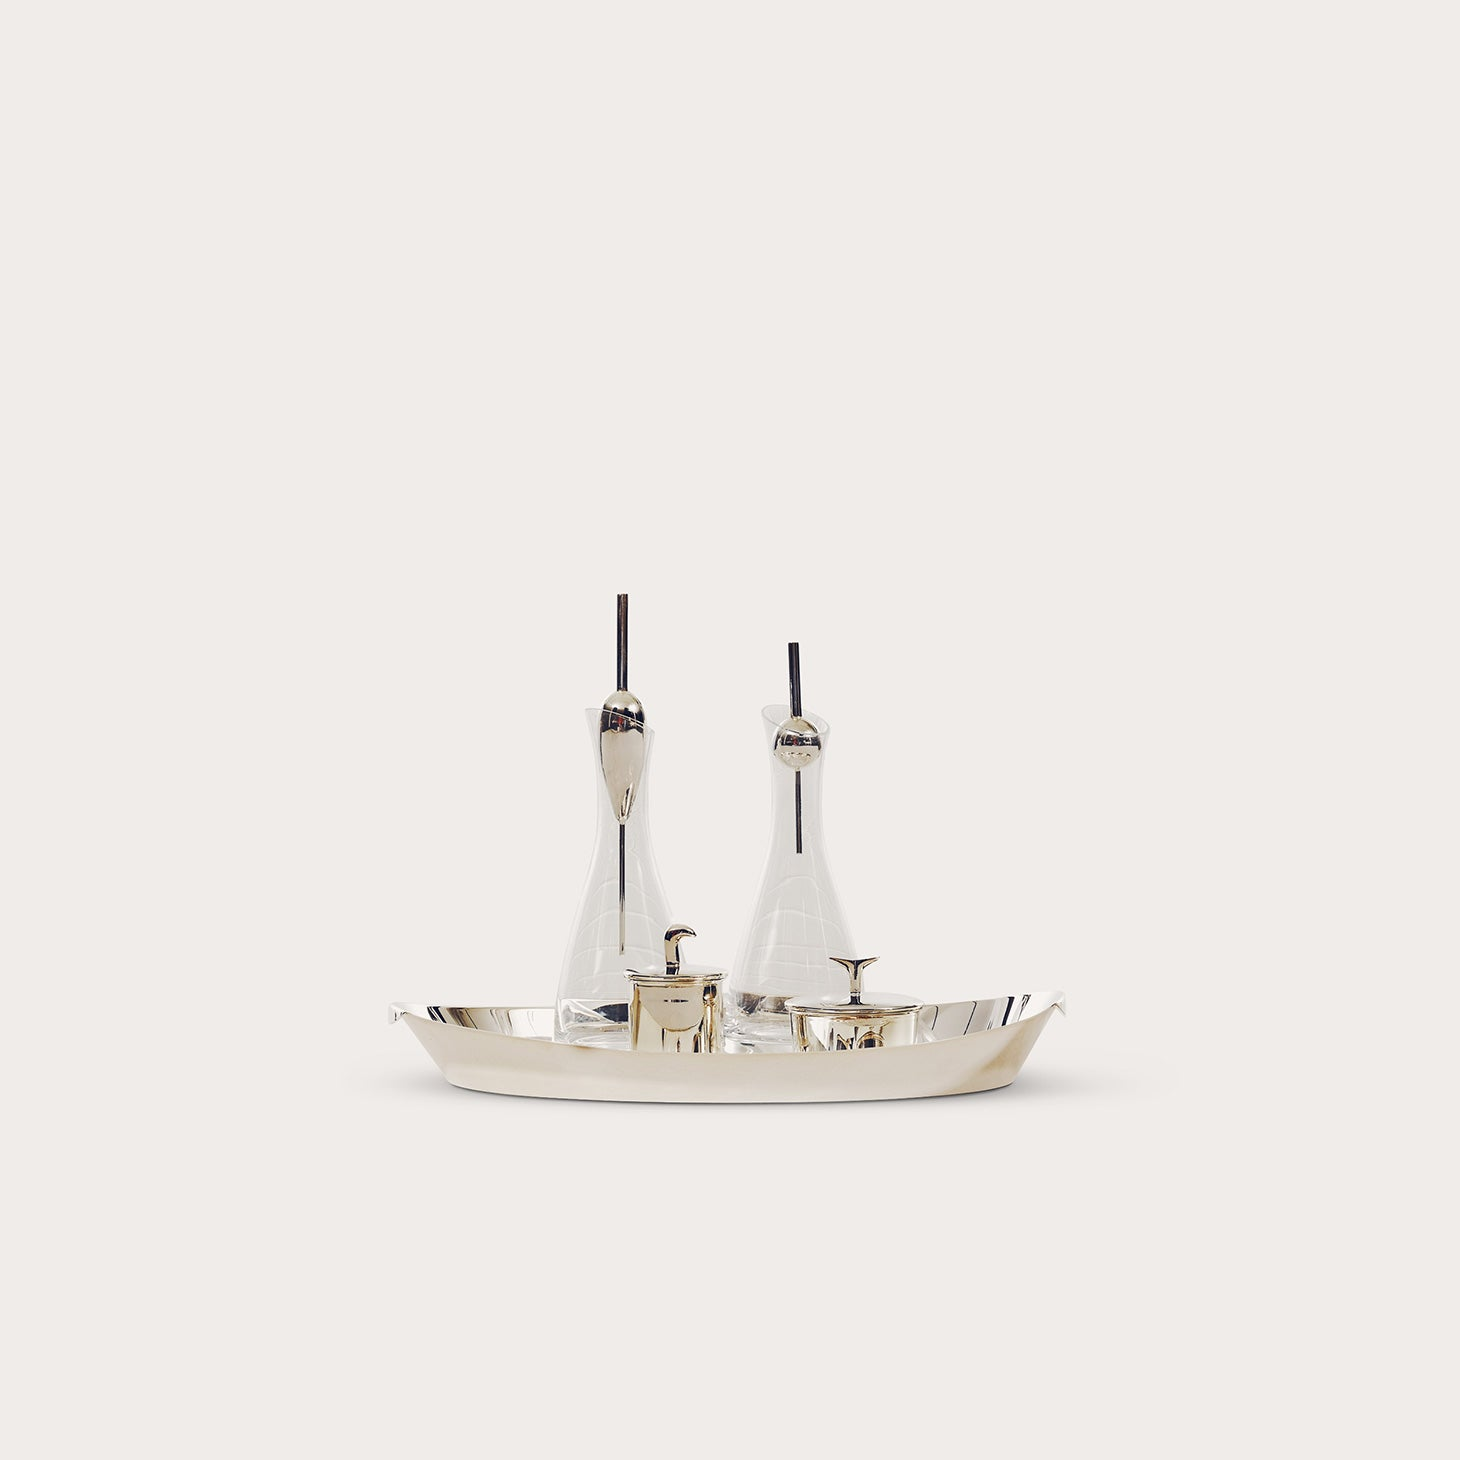 Cruet Set Accessories Yabu Pushelberg Designer Furniture Sku: 561-100-10051